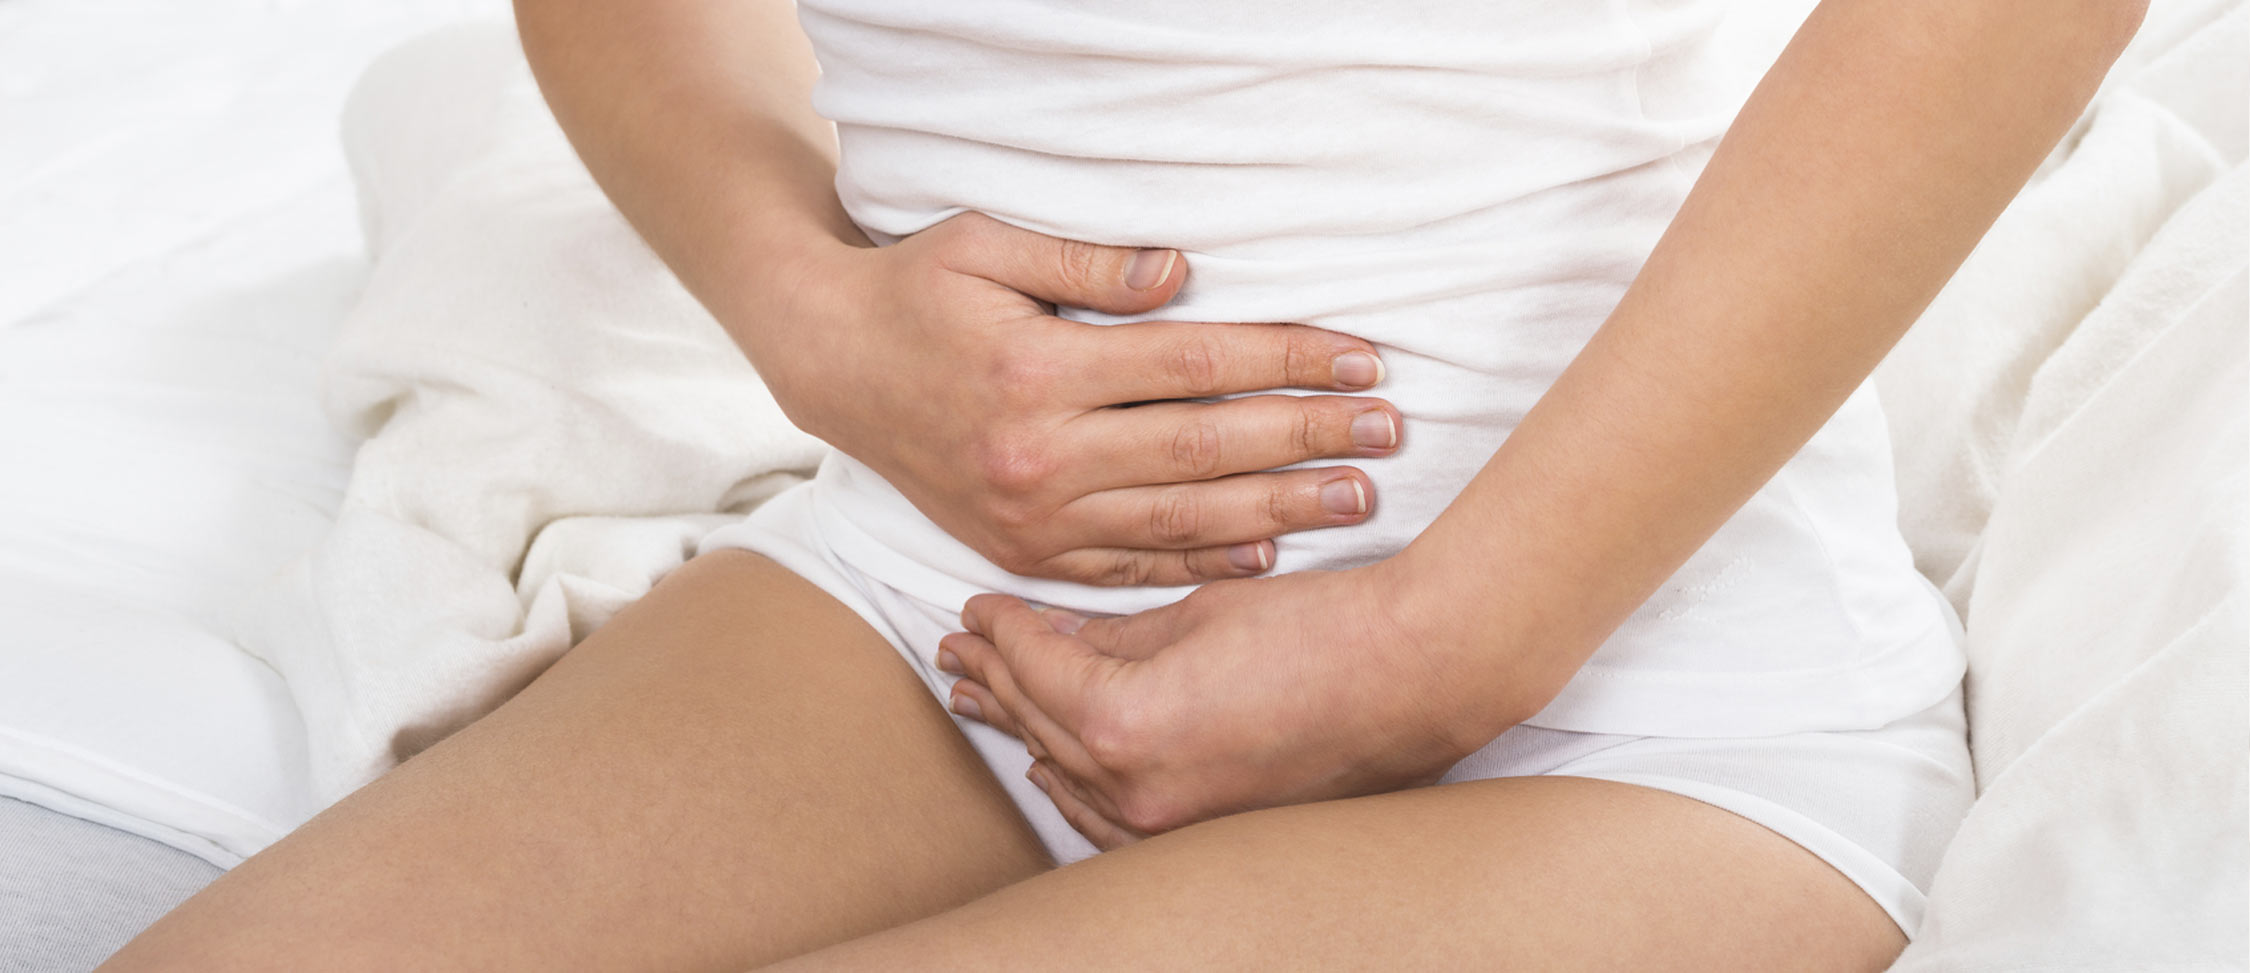 St. Louis Vein Experts - Pelvic Congestion Disease